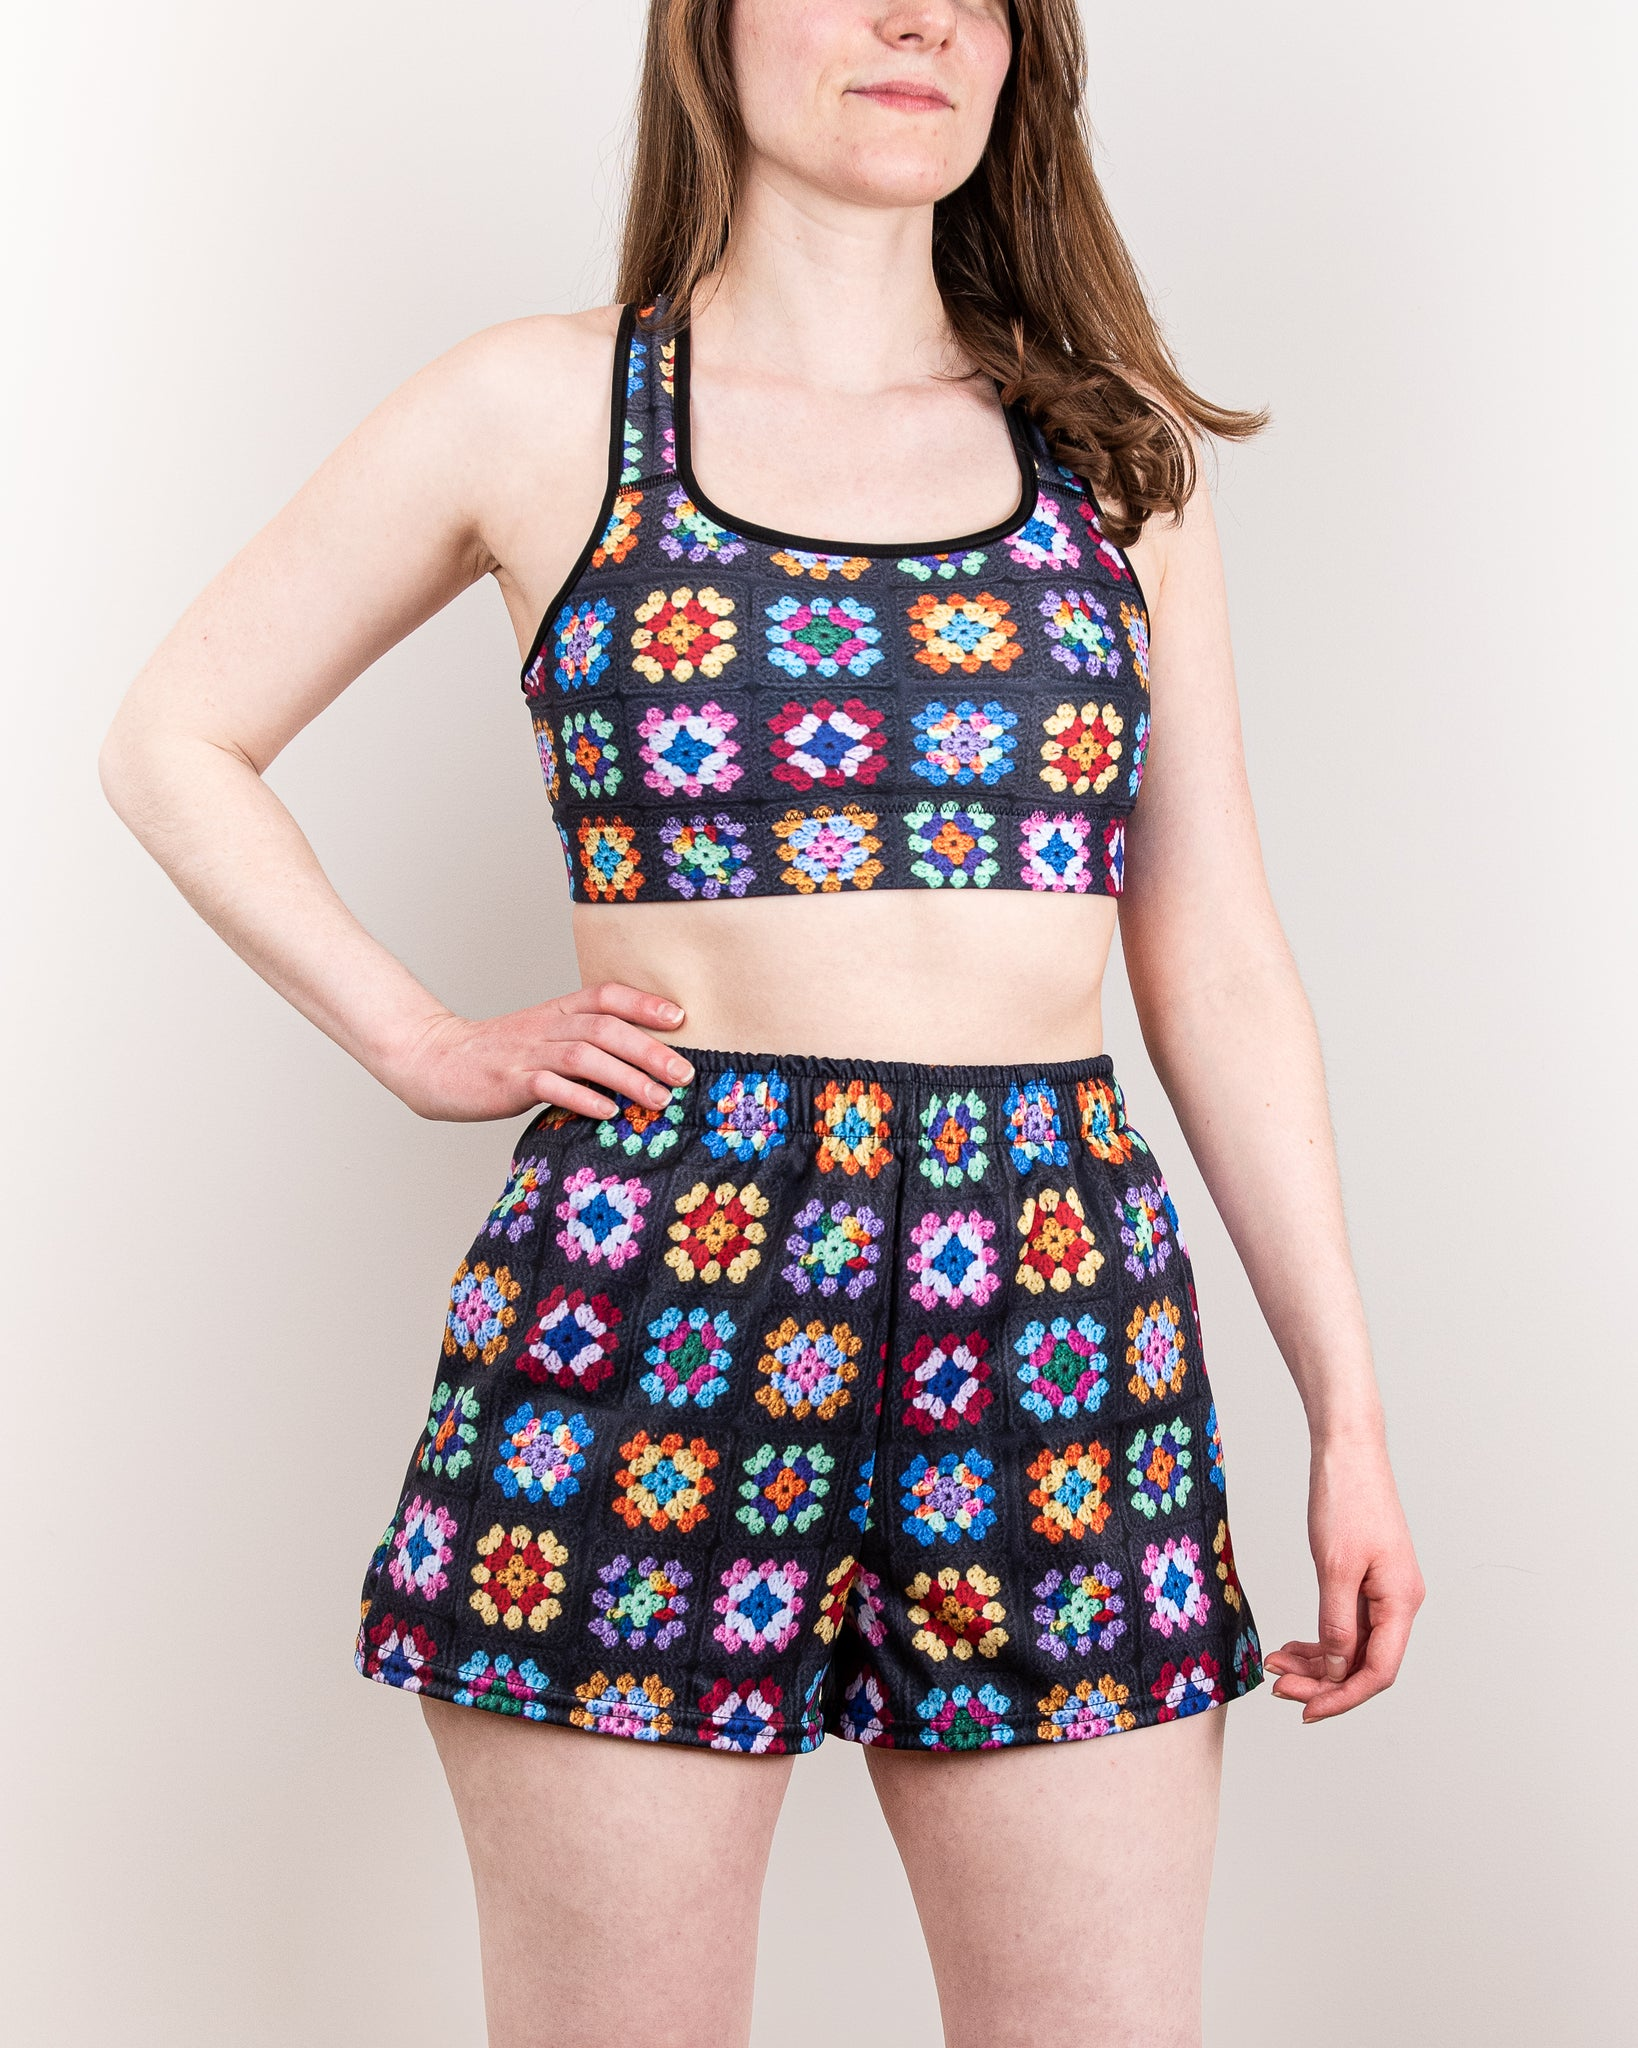 'Kaleidoscope' Classic Granny Square Print Active Shorts